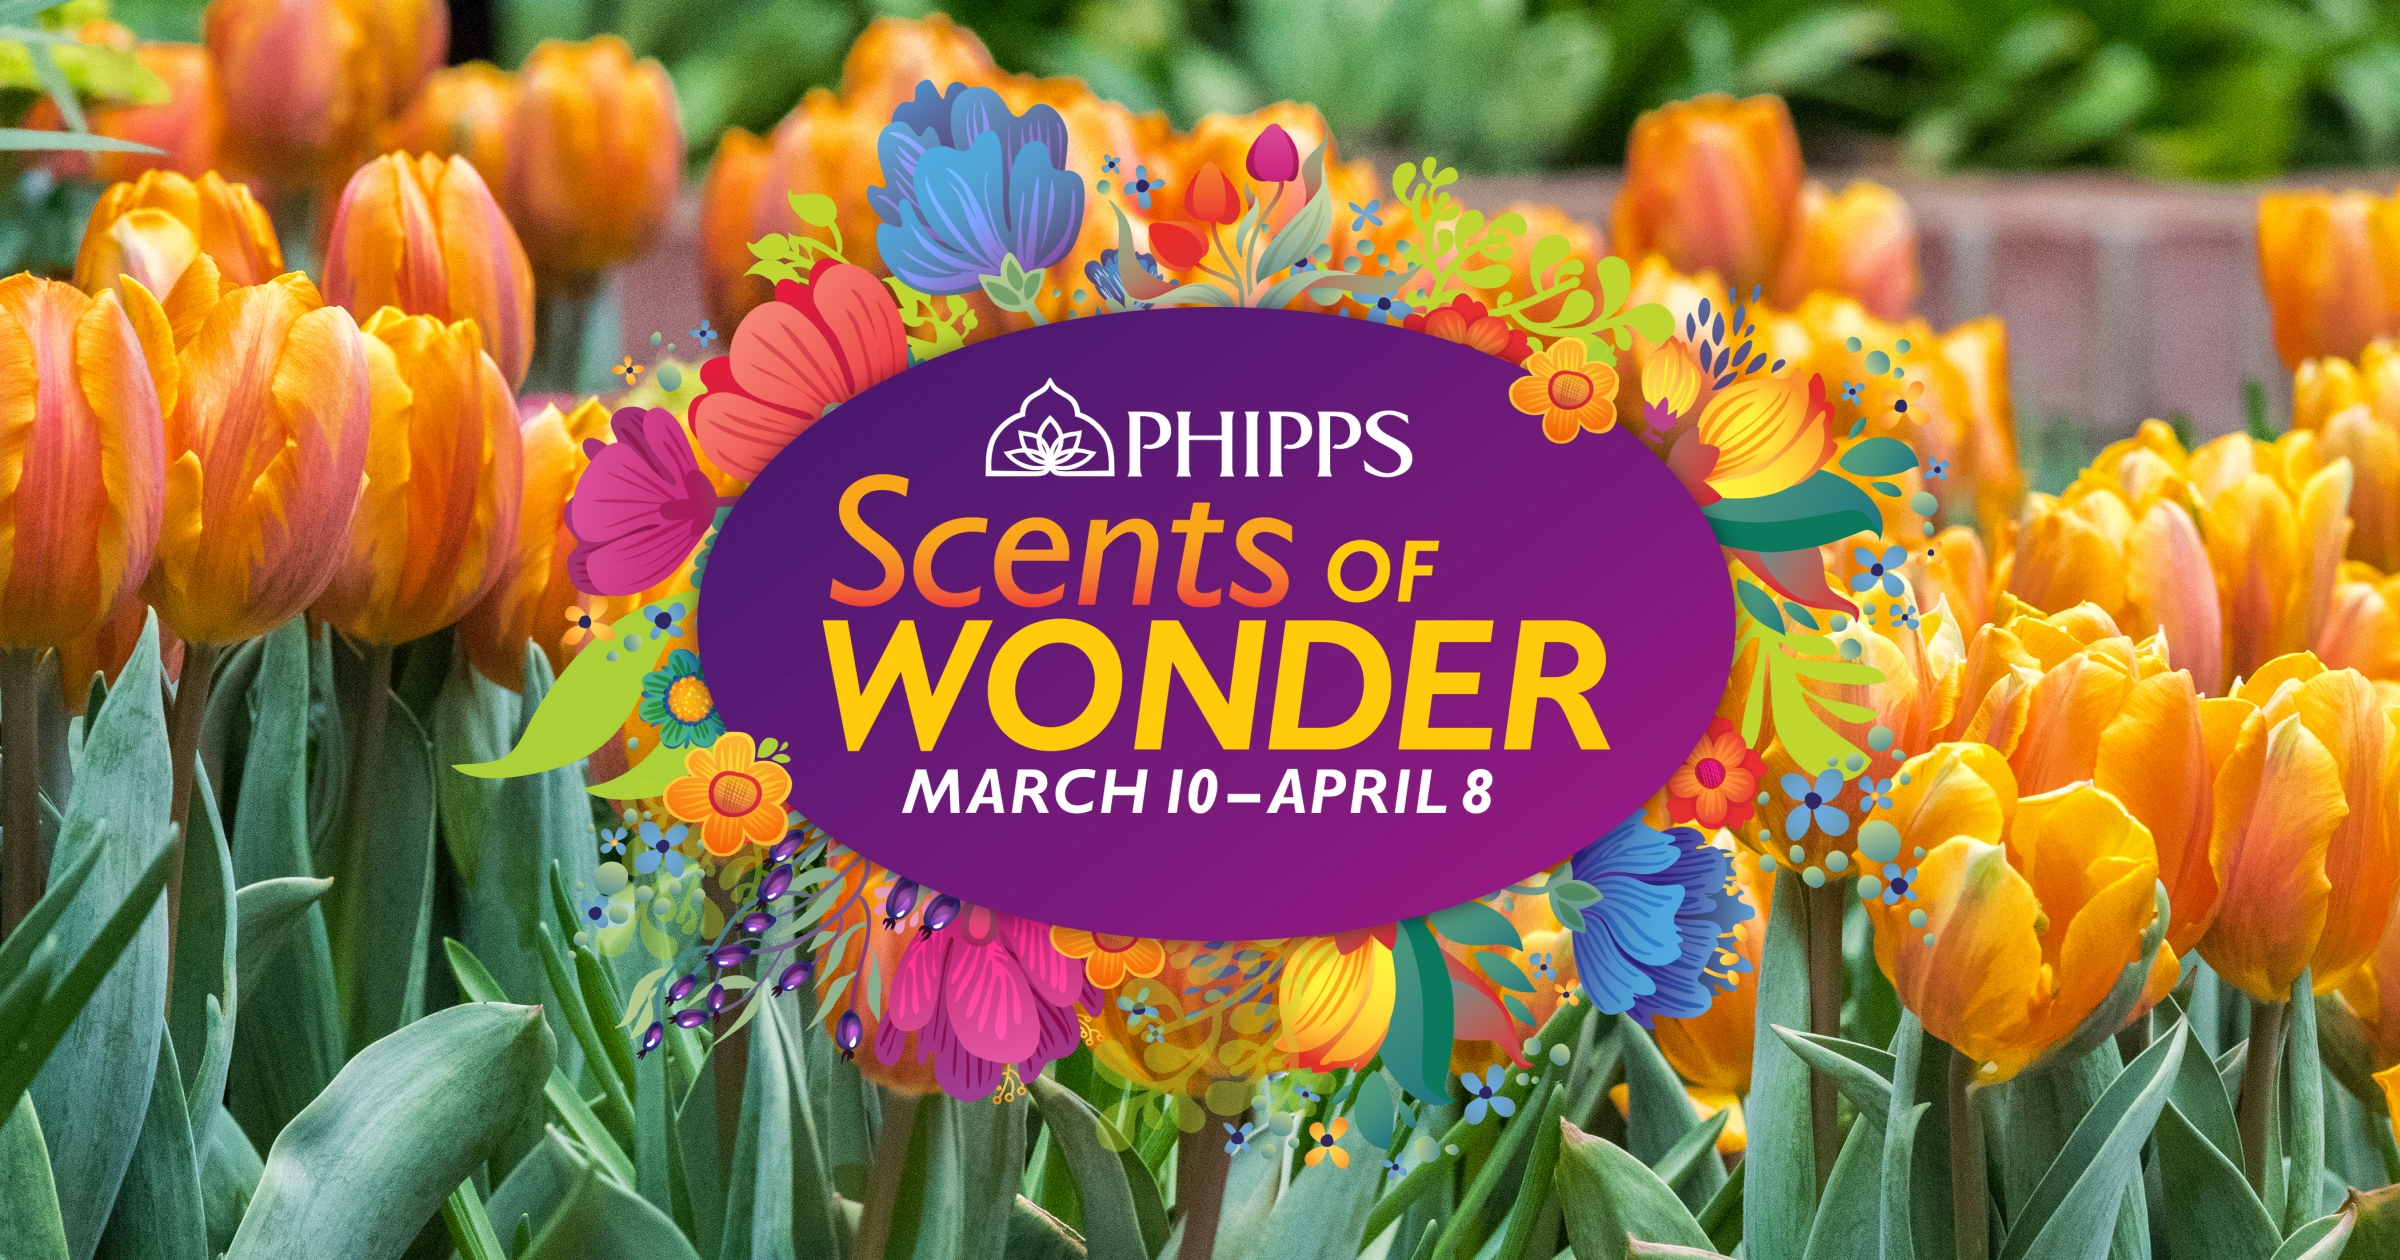 Get nose to petal at phipps conservatorys new spring flower show after a long cold winter an abundance of colorful and fragrant blooms are a welcome treat for the senses stop and smell the flowers in phipps signature izmirmasajfo